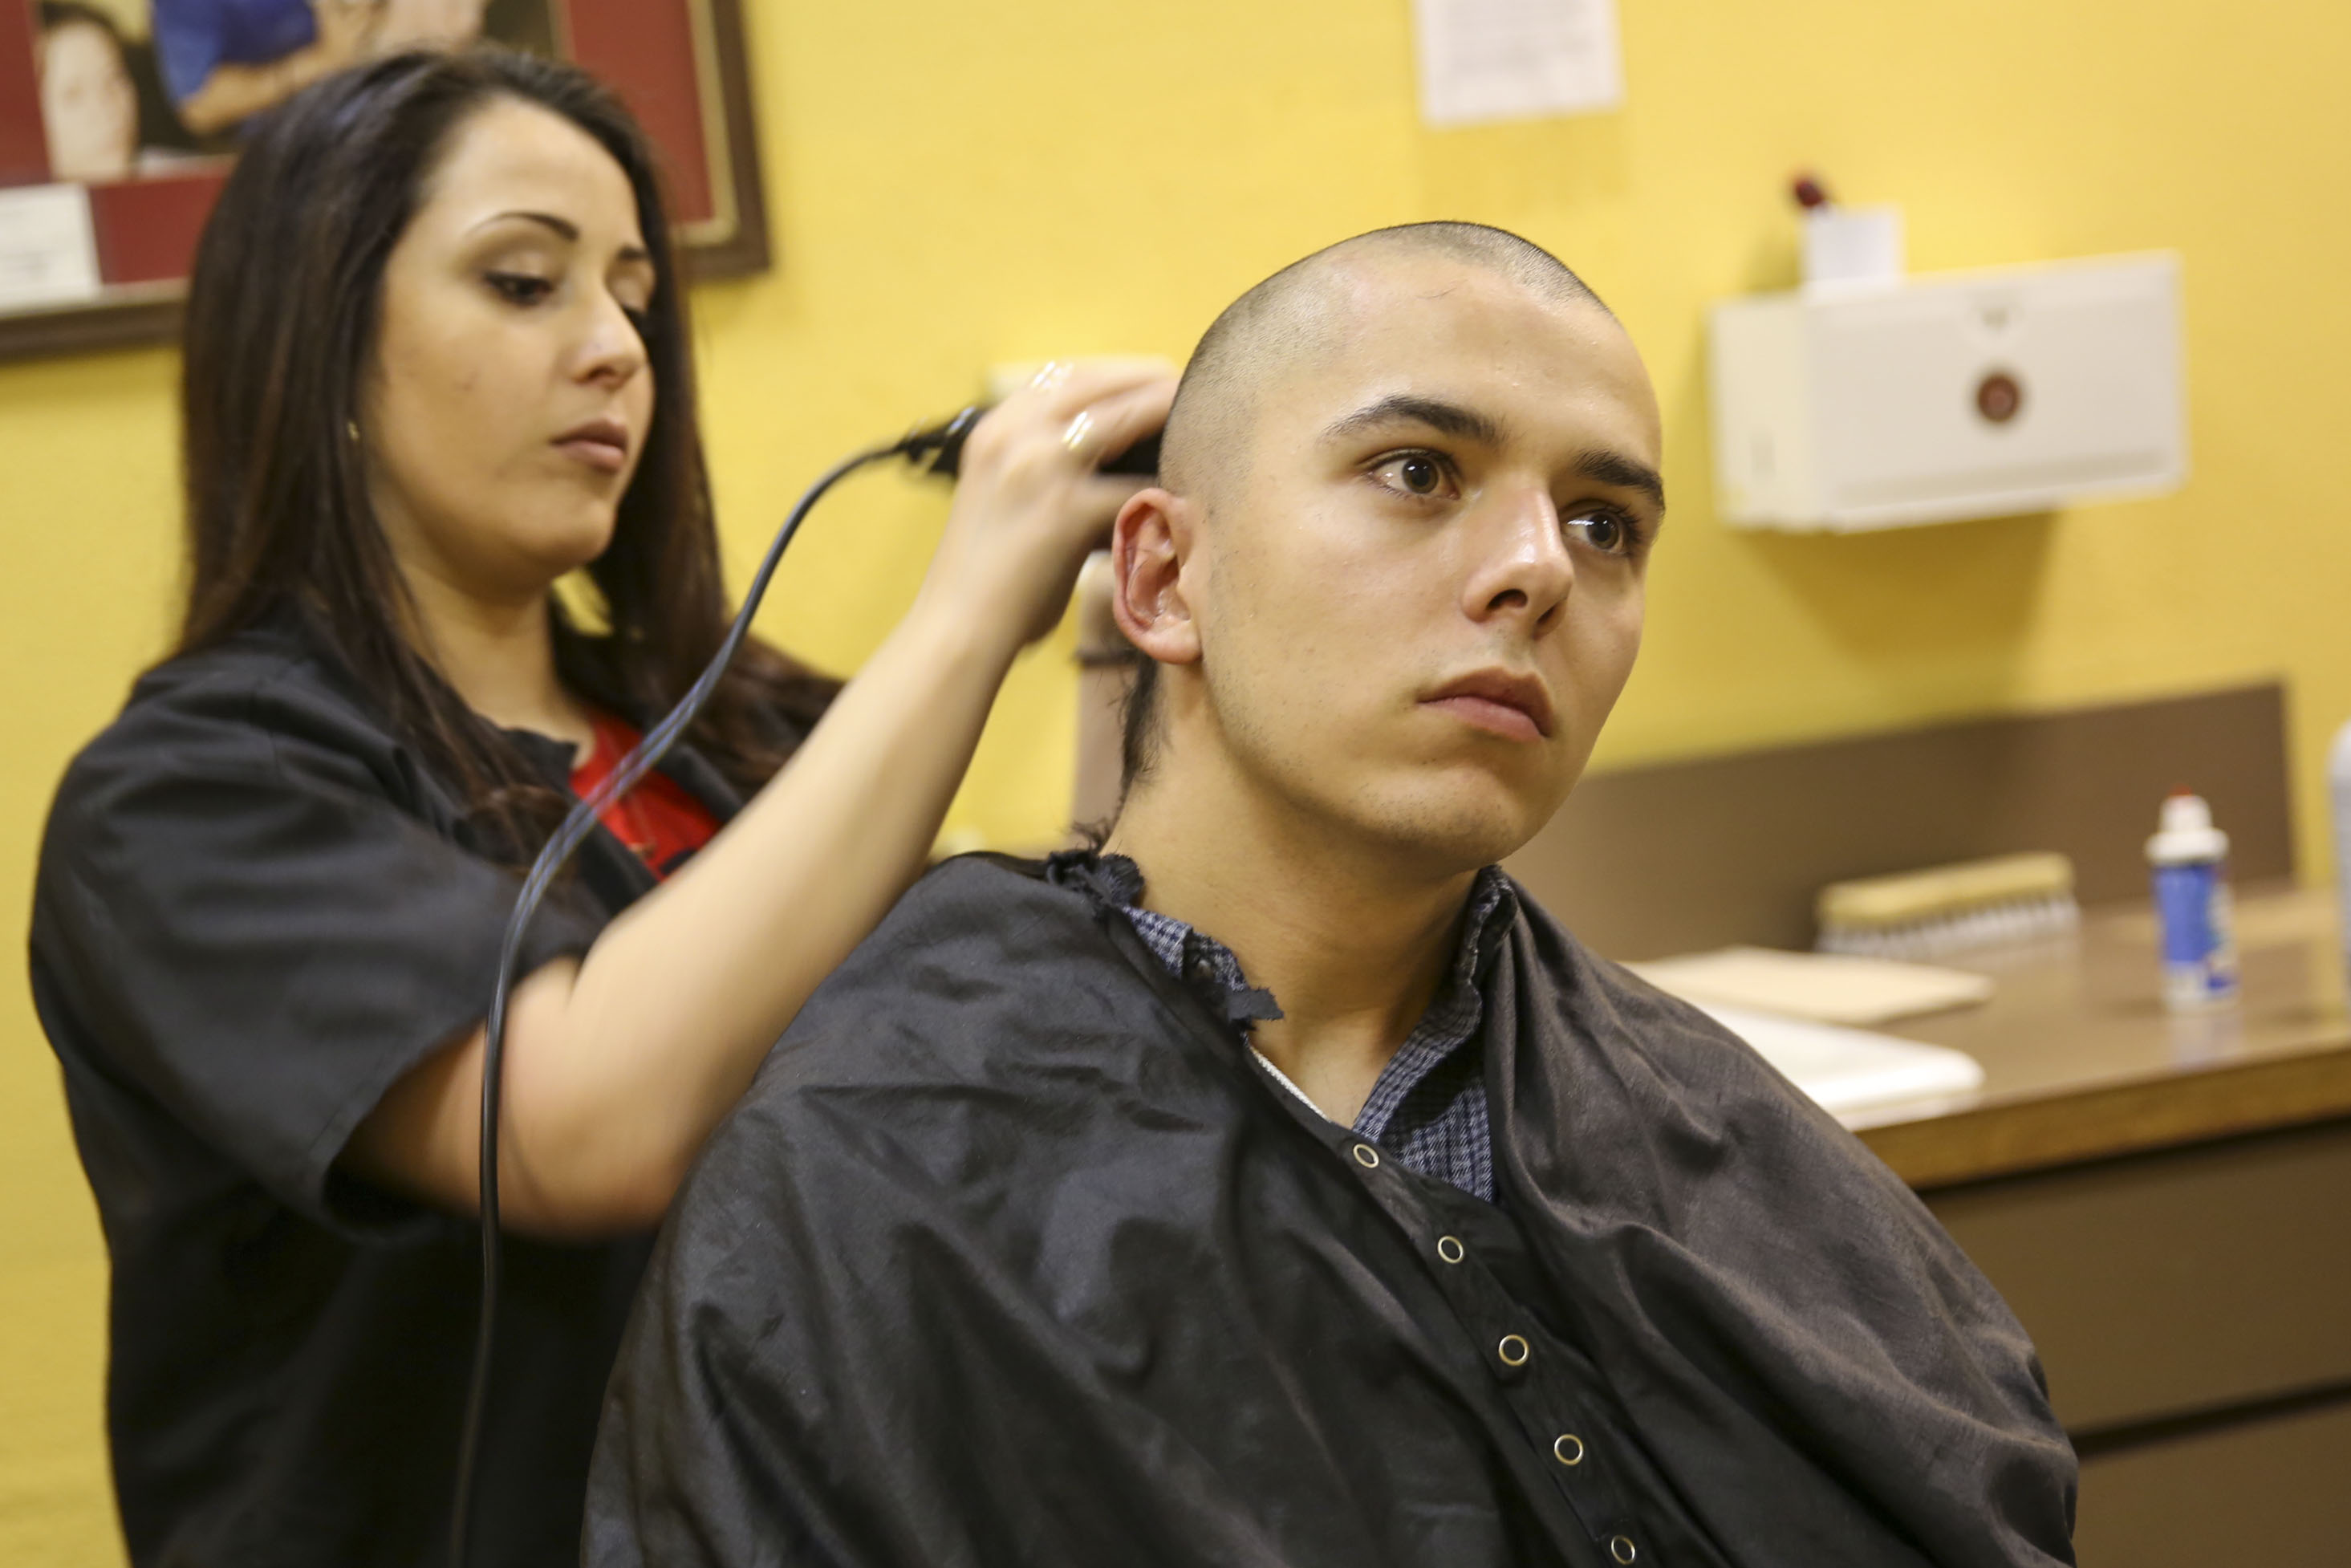 how to give a marine haircut